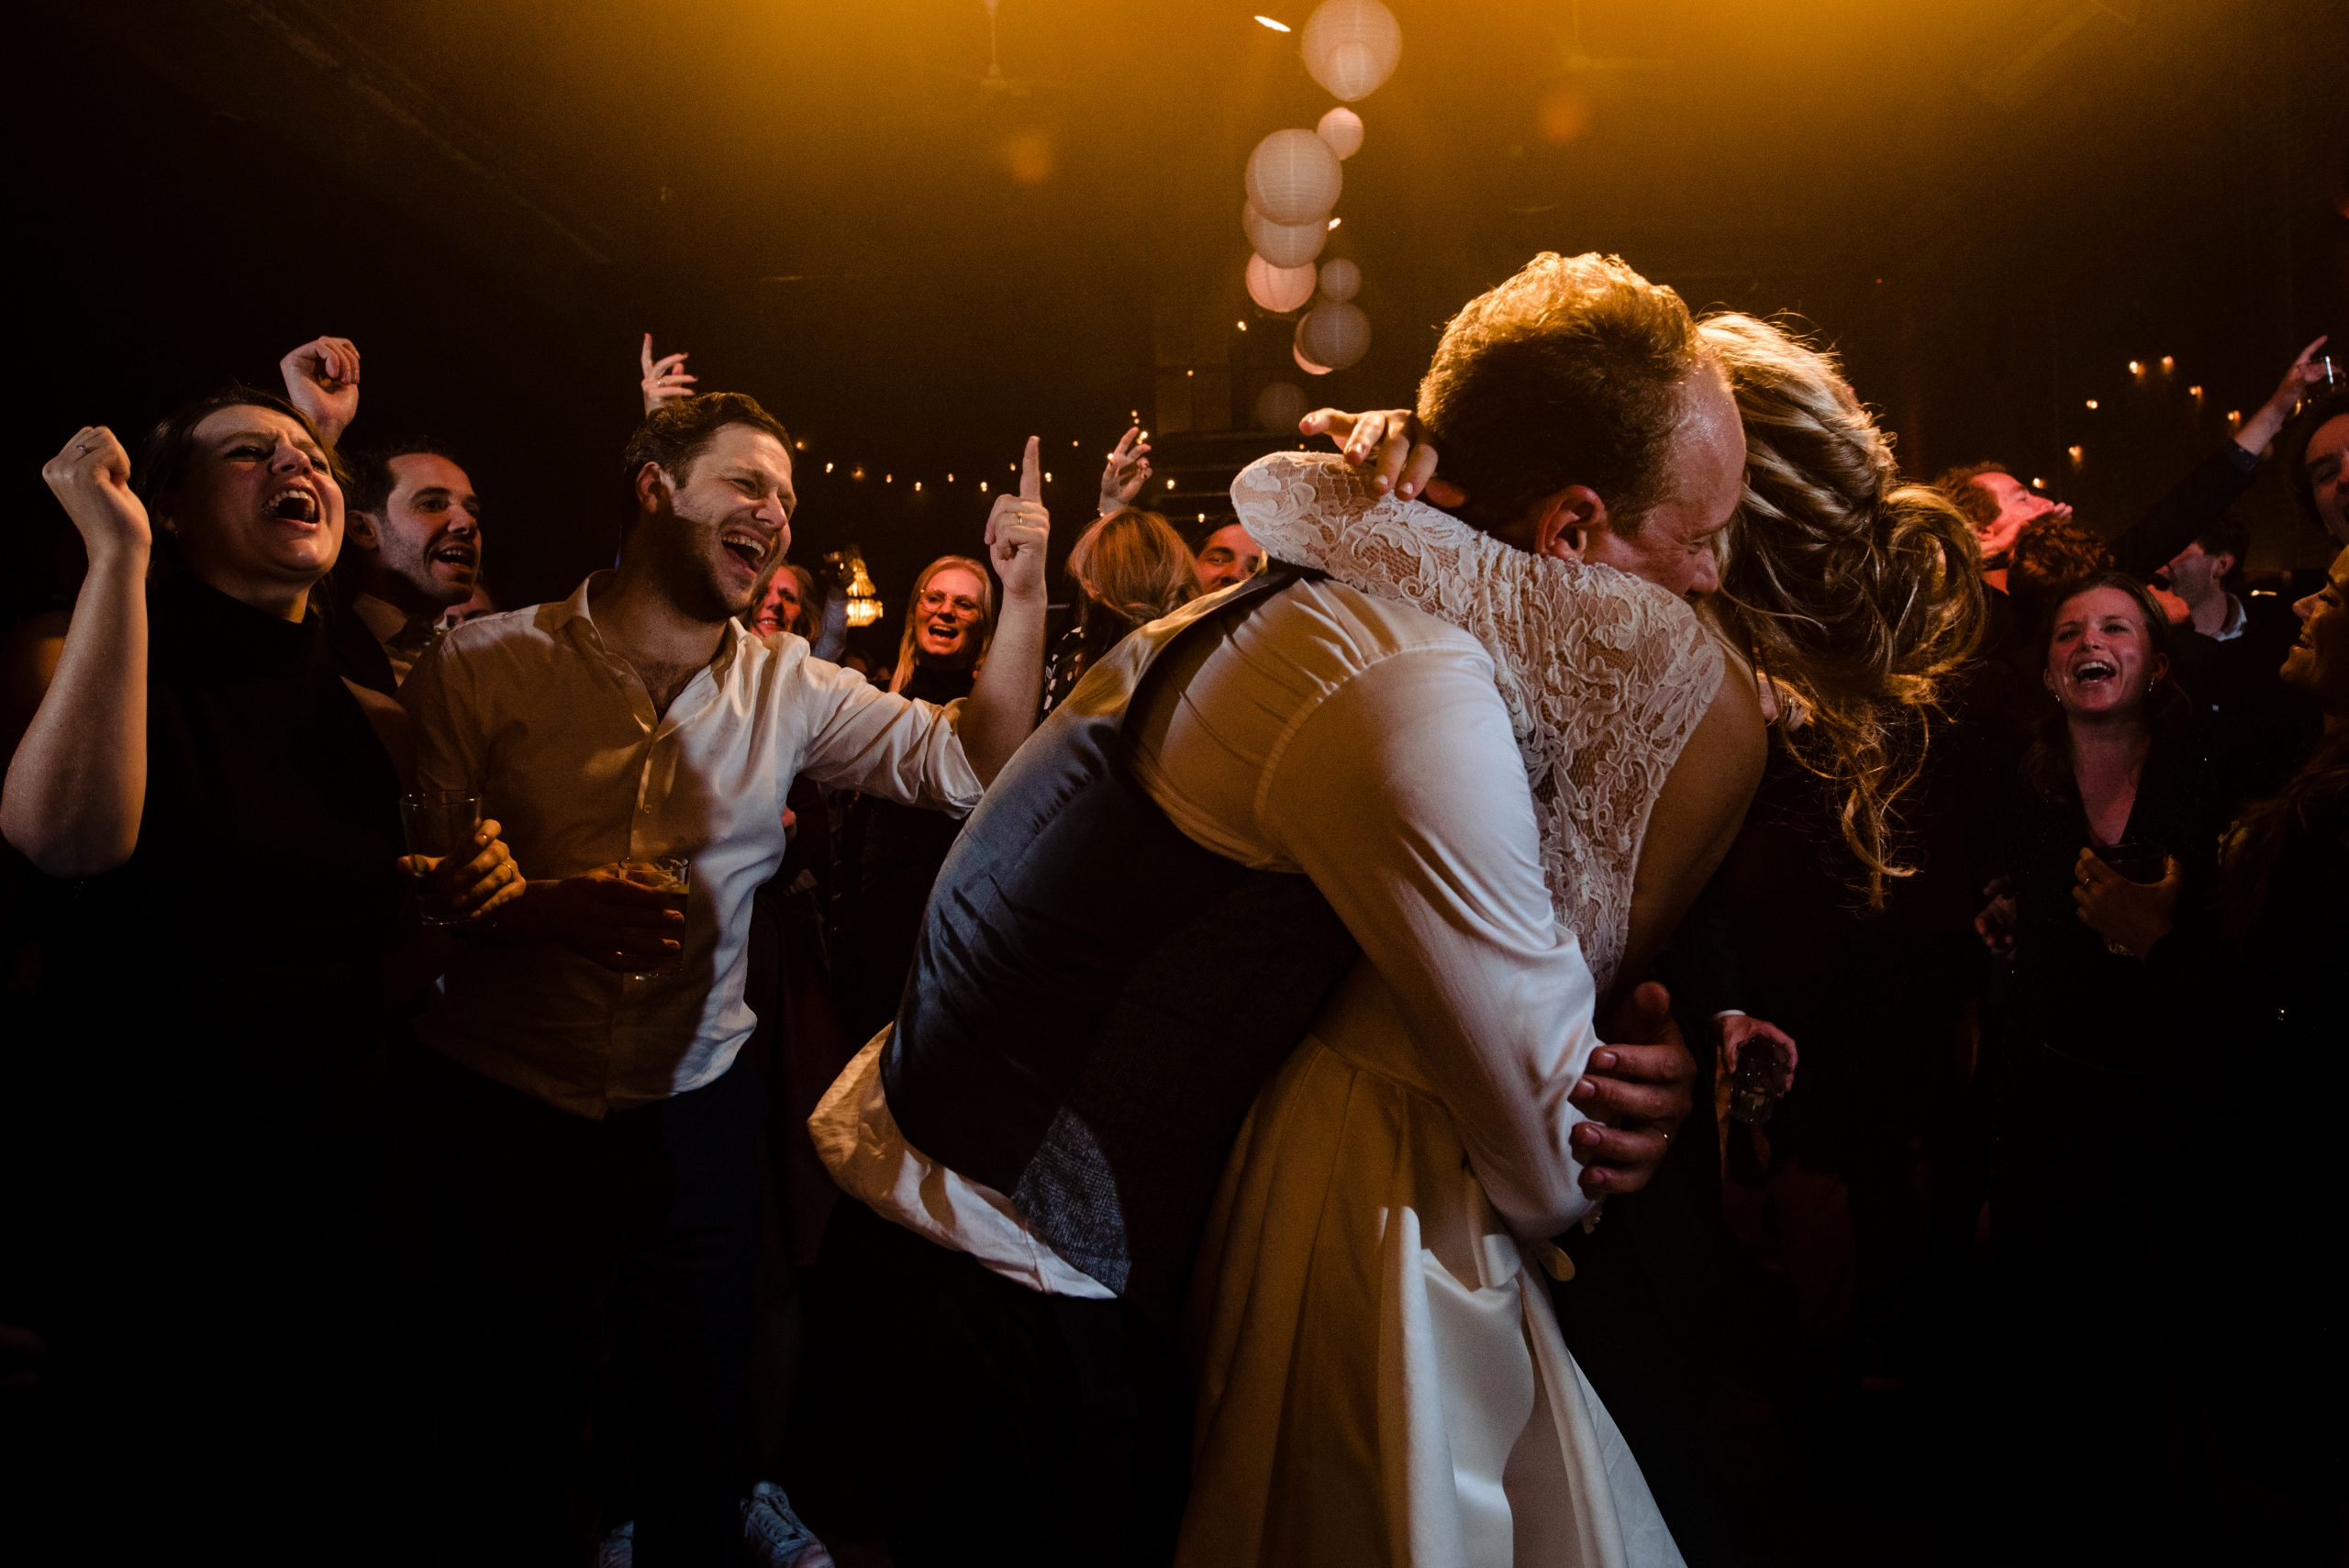 Martine and Wouter – Wedding photographer in Amsterdam